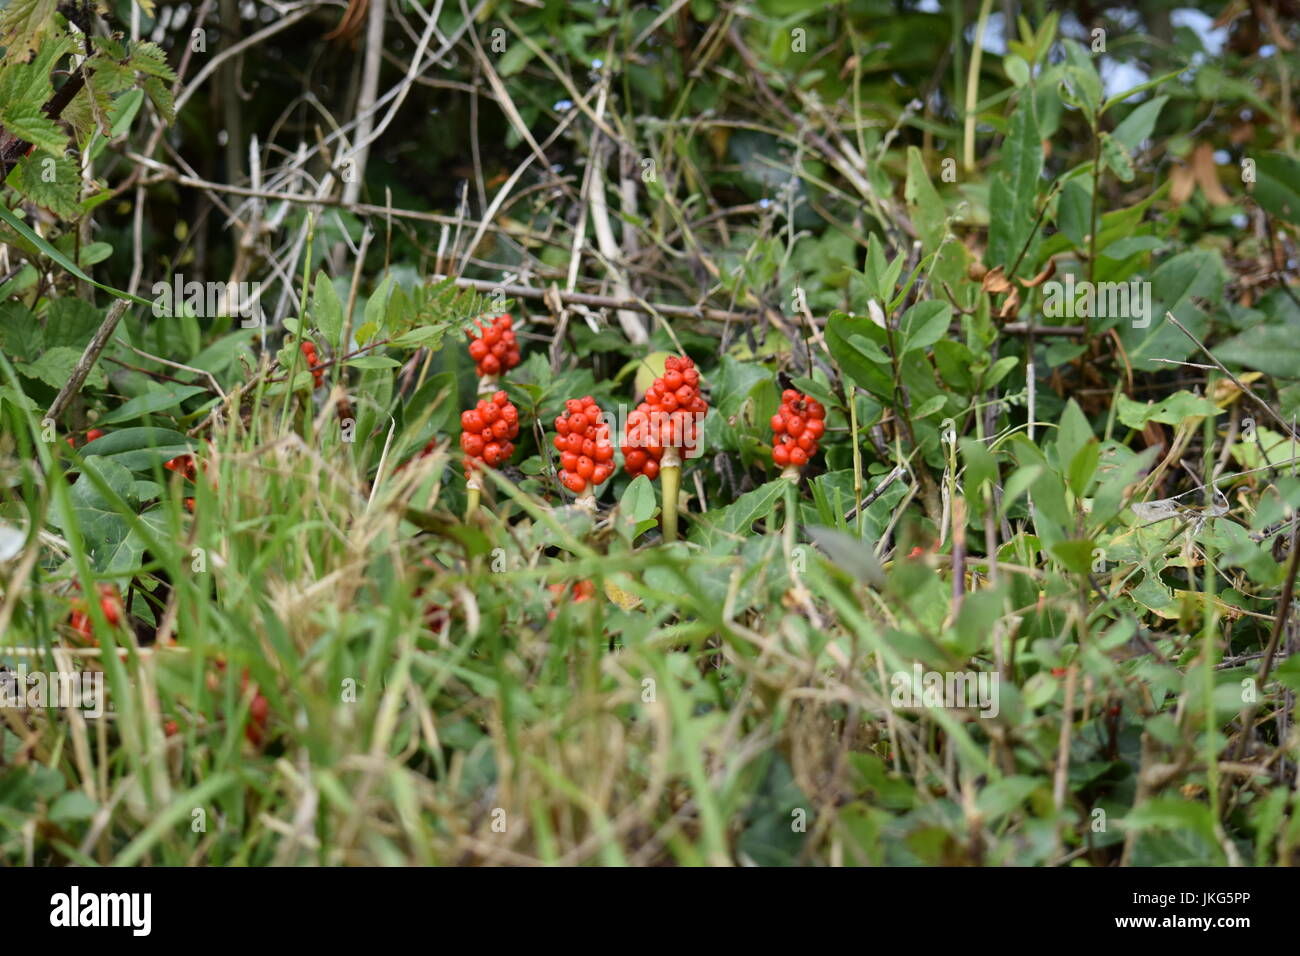 Arum maculatum or Lords and Ladies - Stock Image